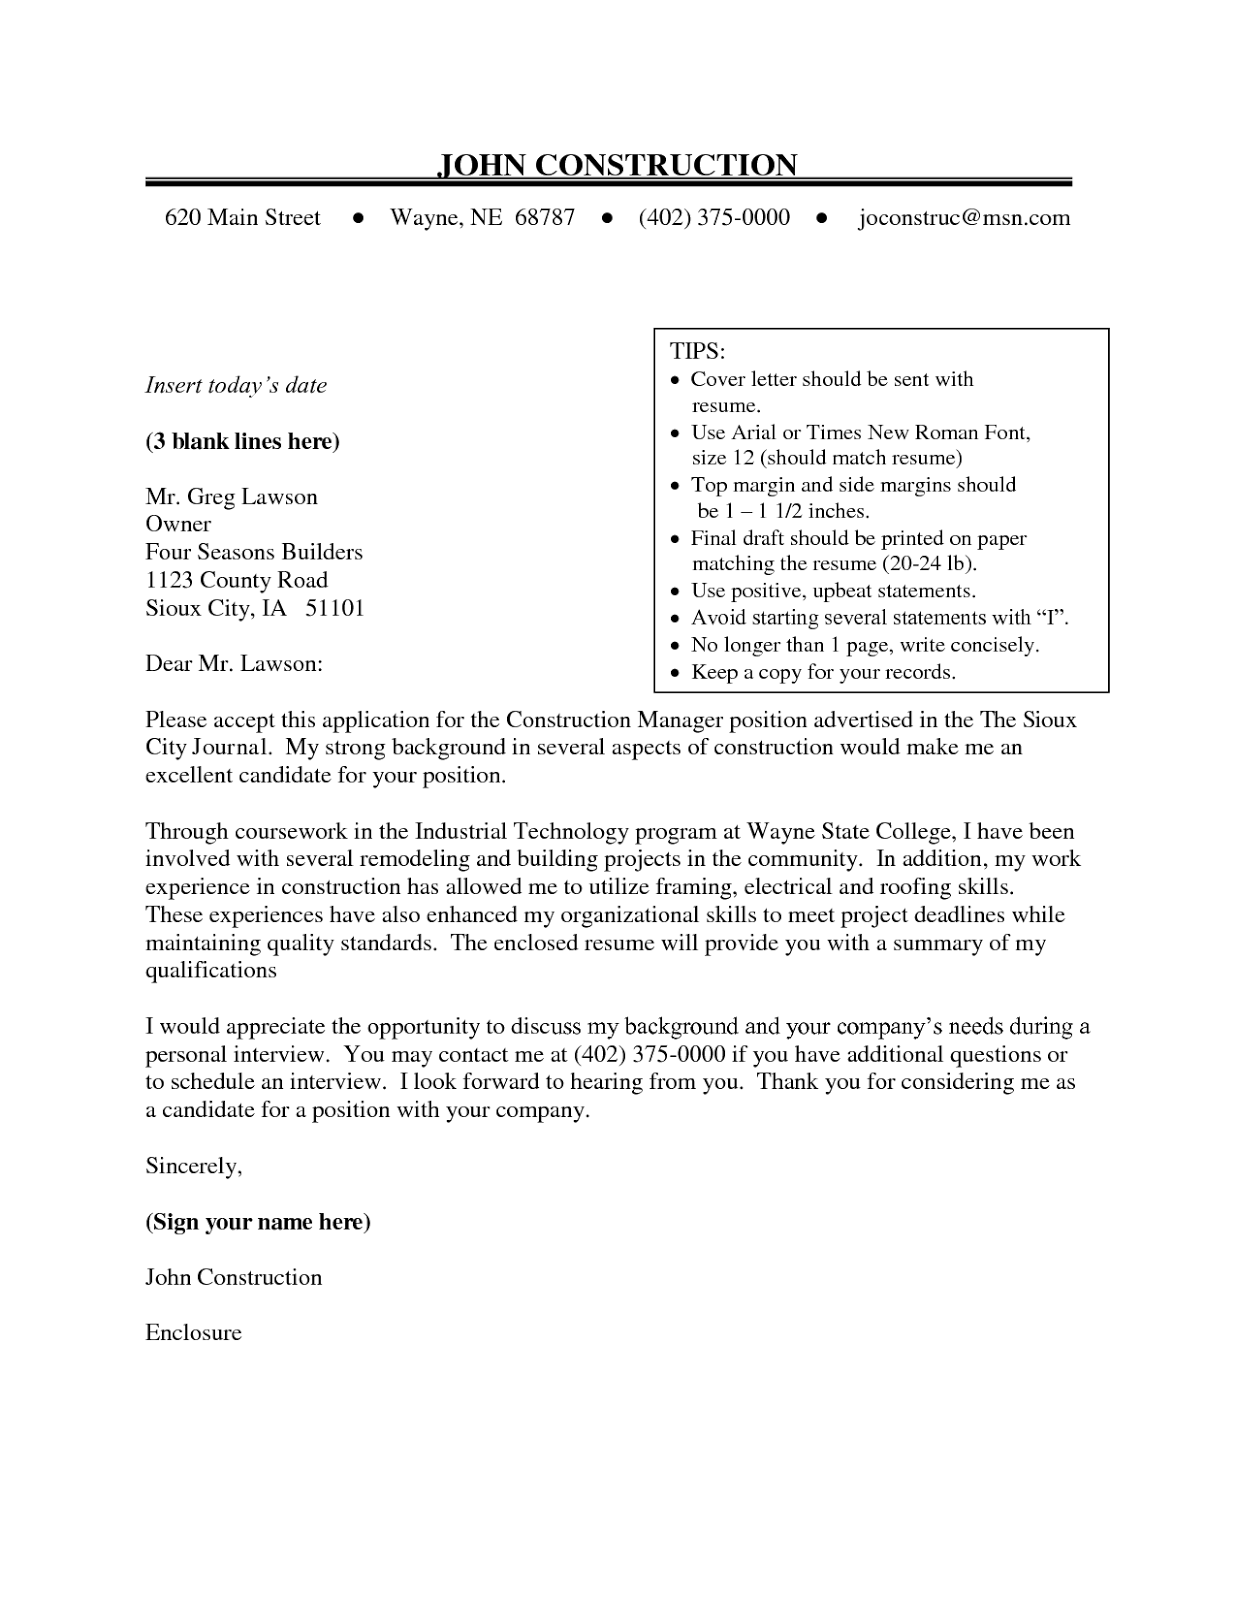 Pet Shop Assistant Cover Letter Lenin Vs Trotsky Essay Spanish